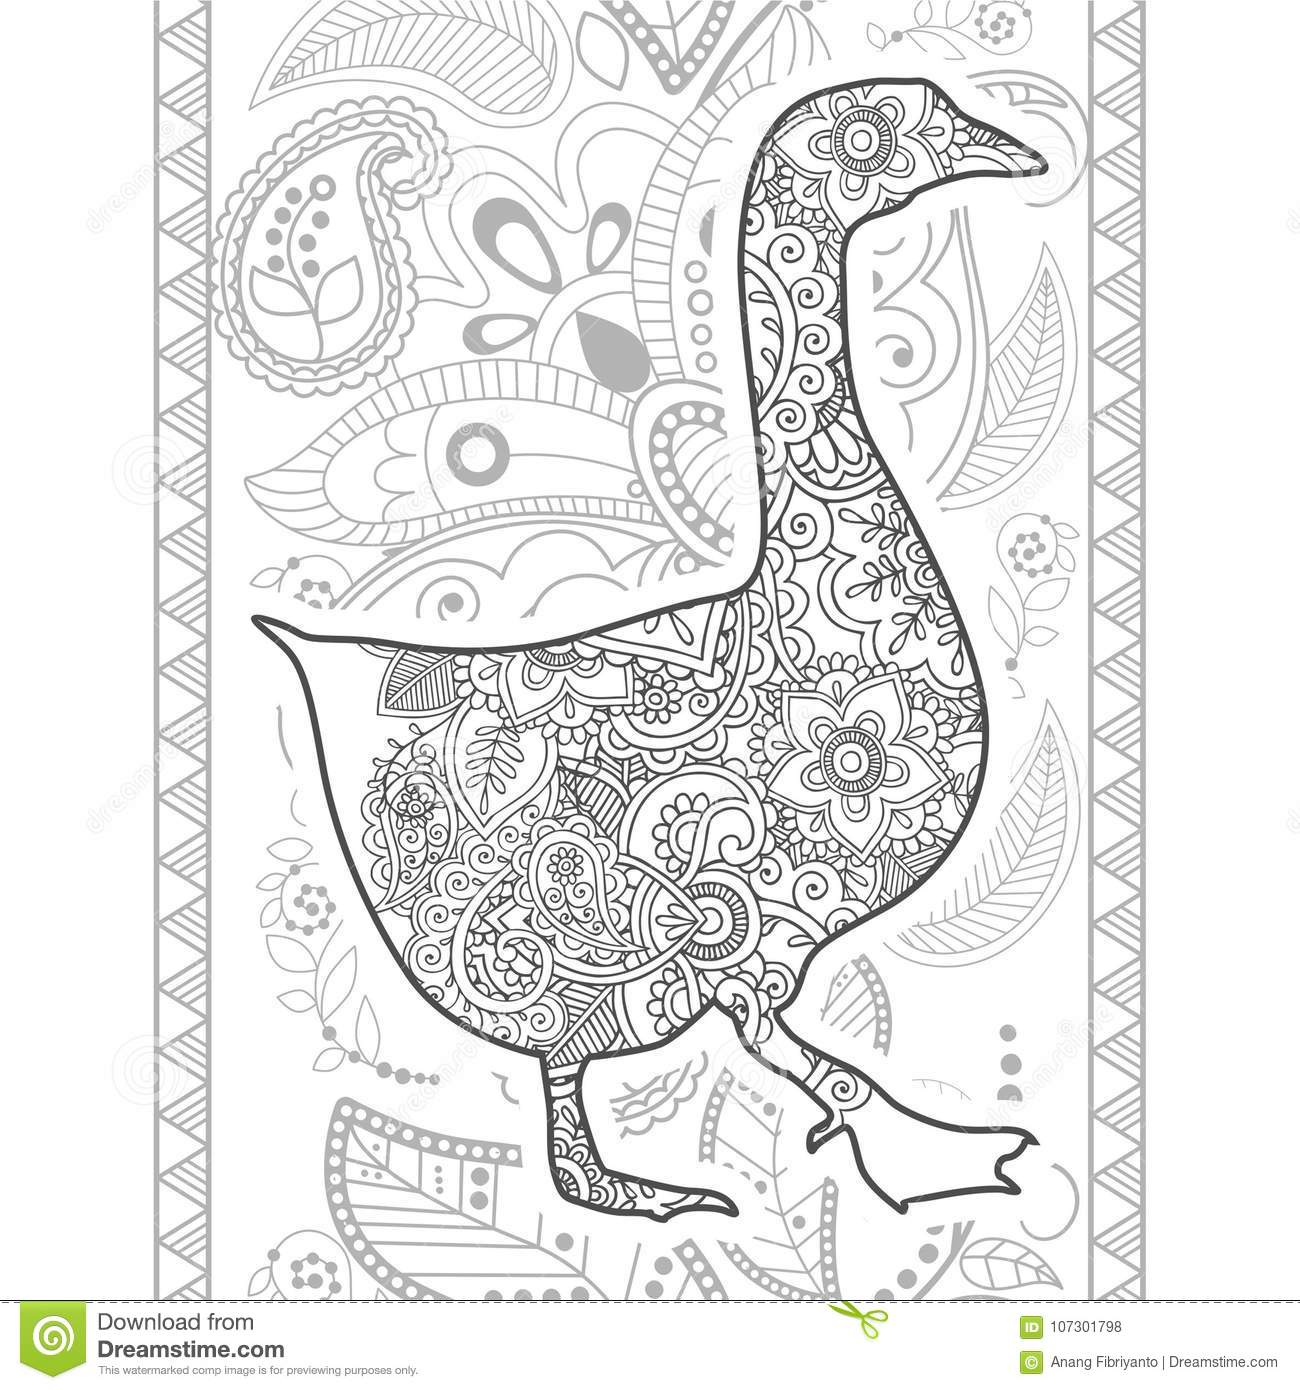 Hand drawn doodle animal paisley adult stress release coloring page zentangle 2